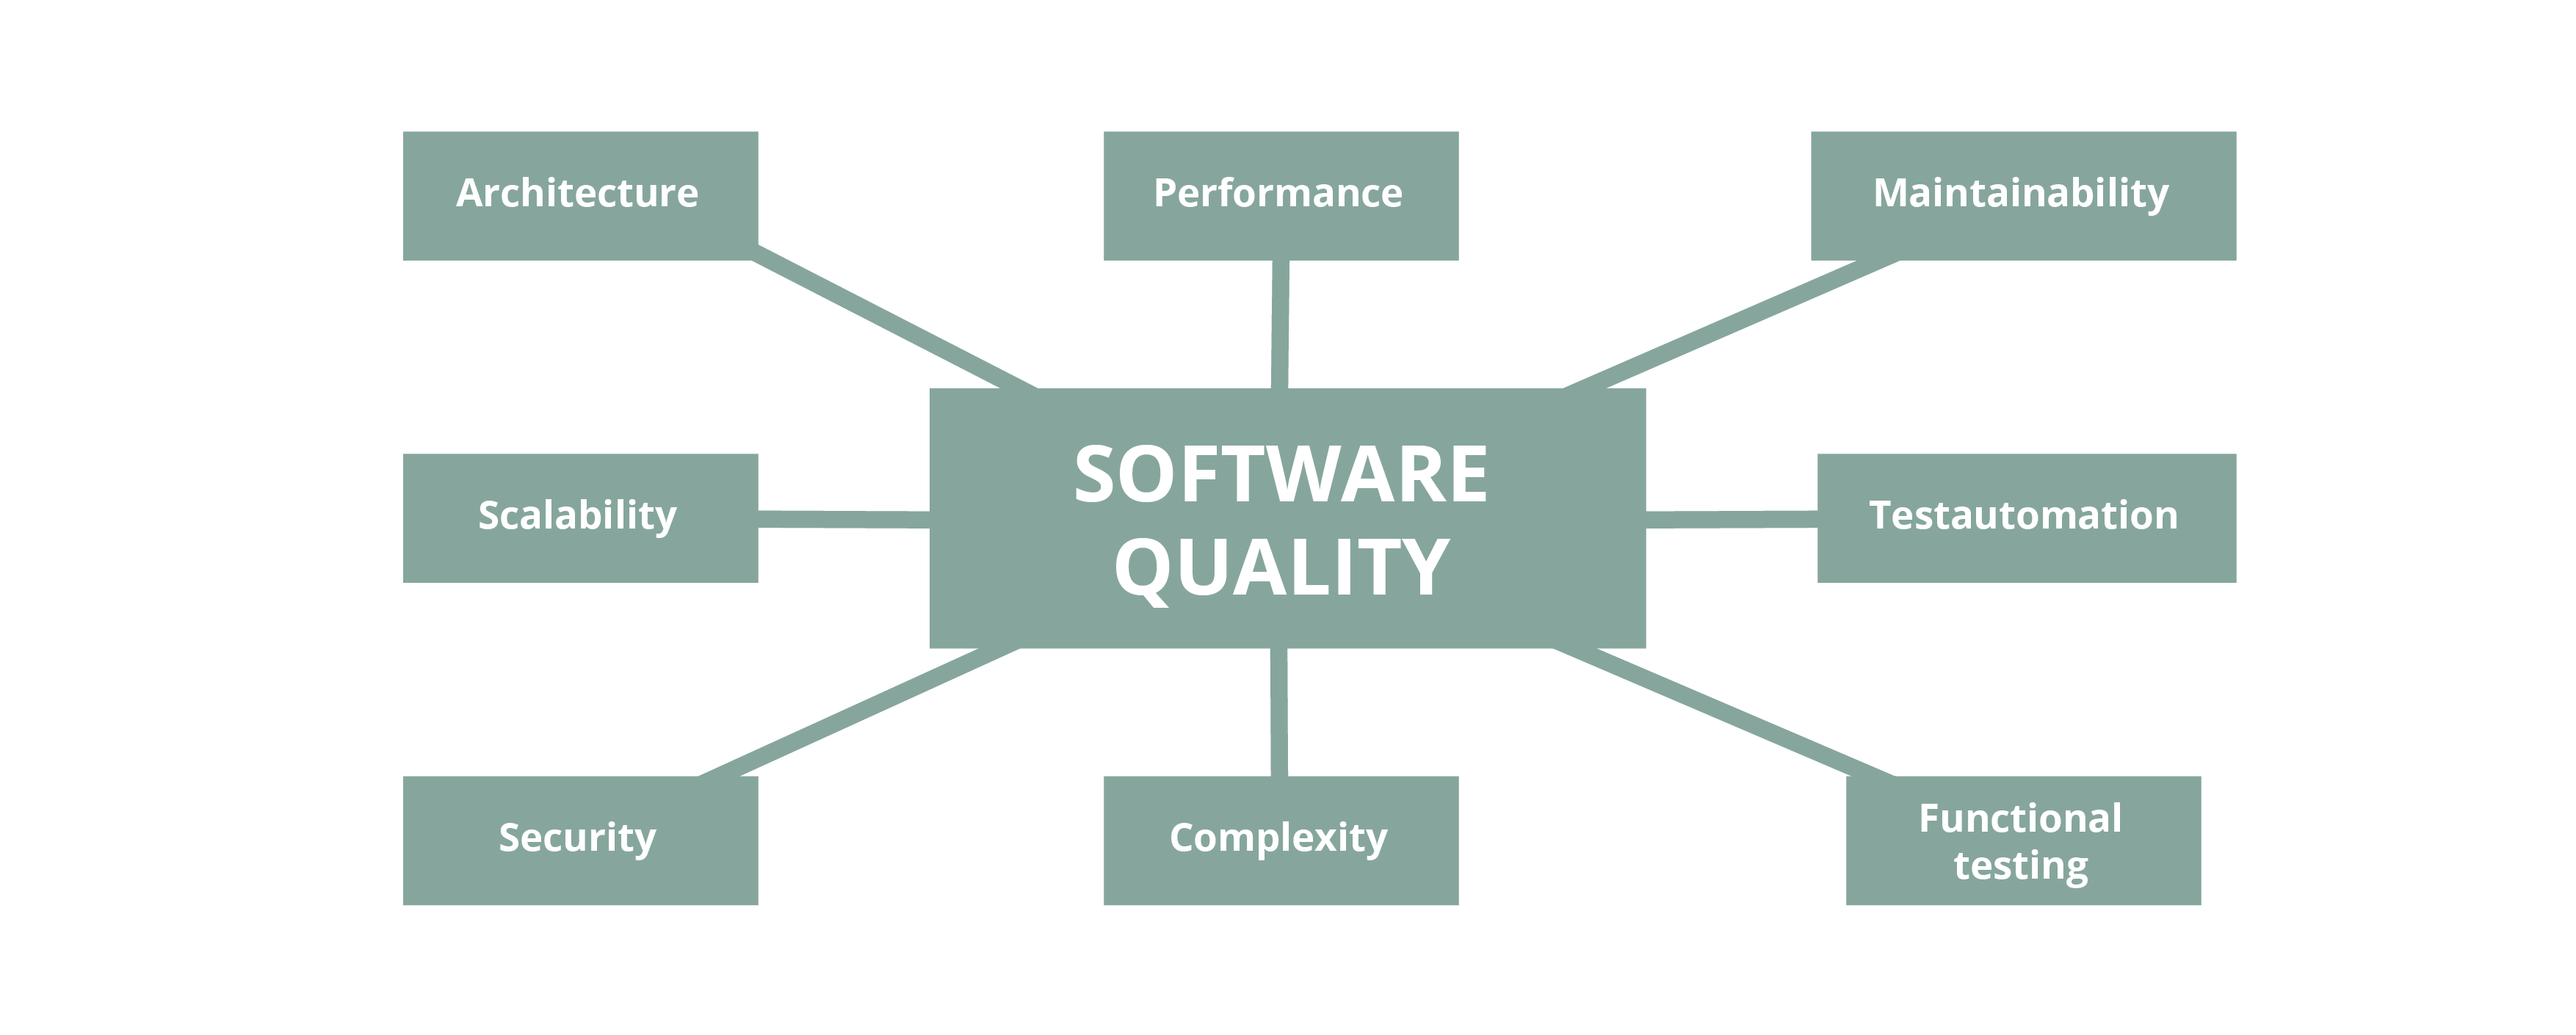 Software_quality-01